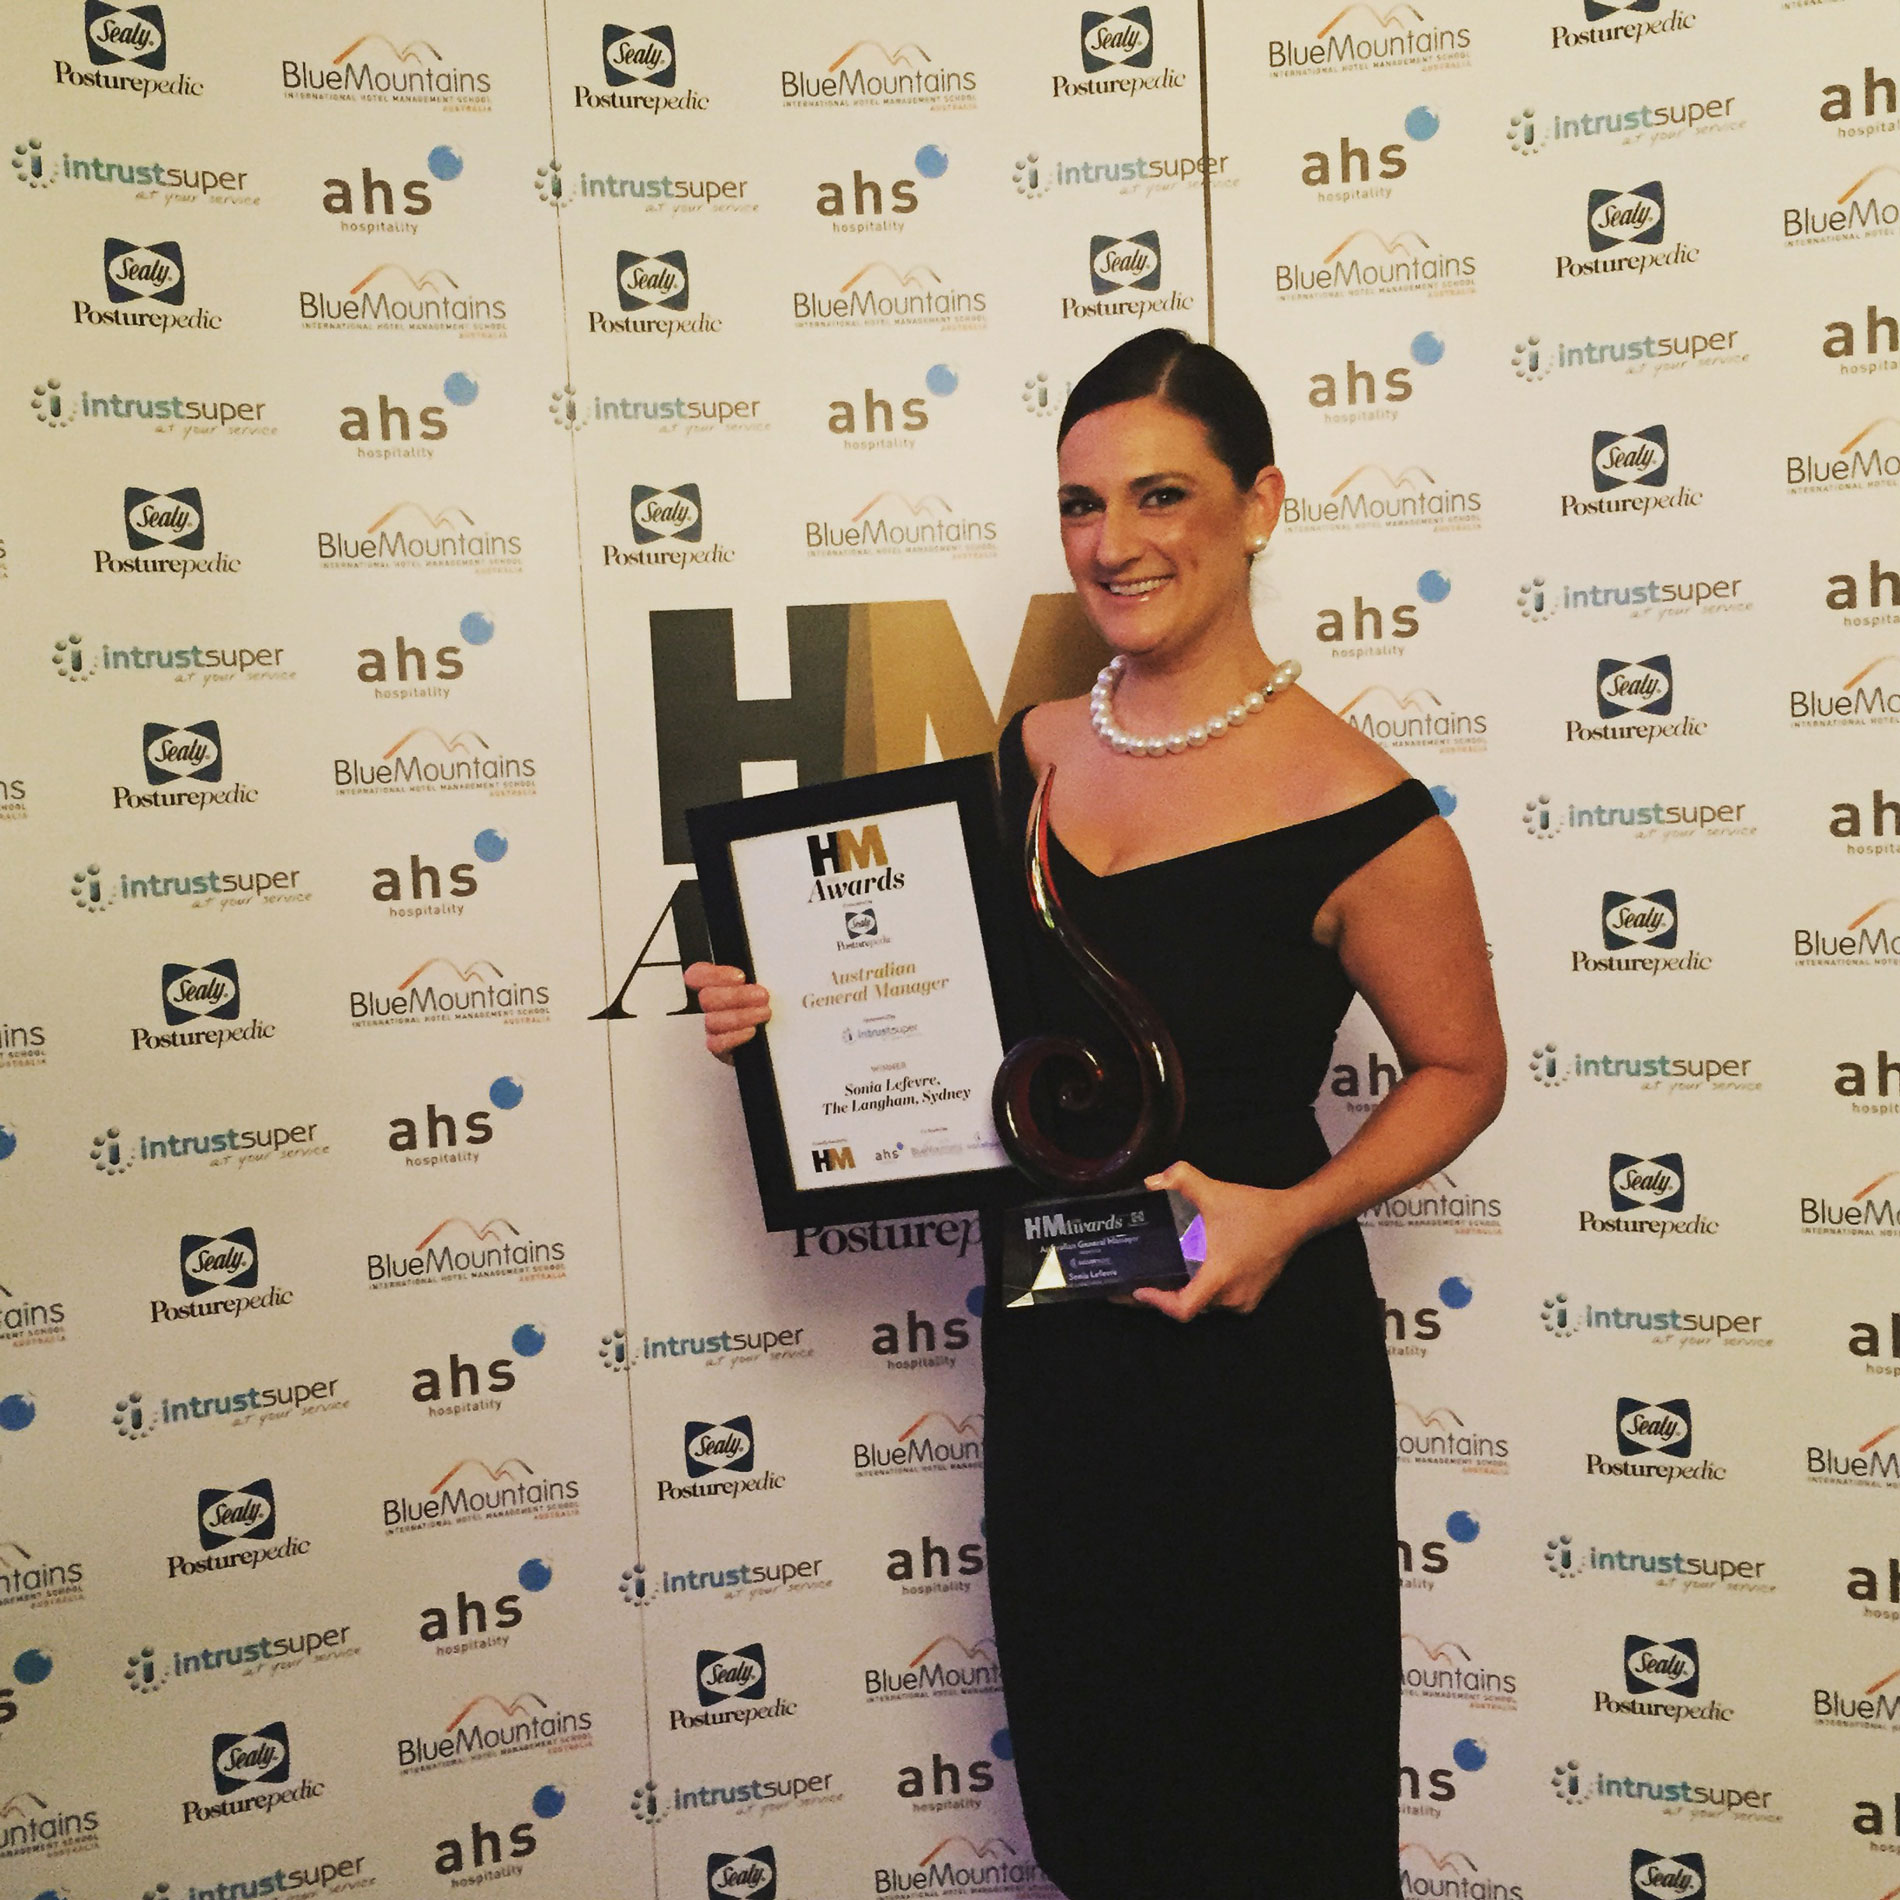 Sonia lefevre of the langham sydney named 2015 australian general sonia lefevre of the langham sydney named 2015 australian general manager of the year kristyandbryce Image collections